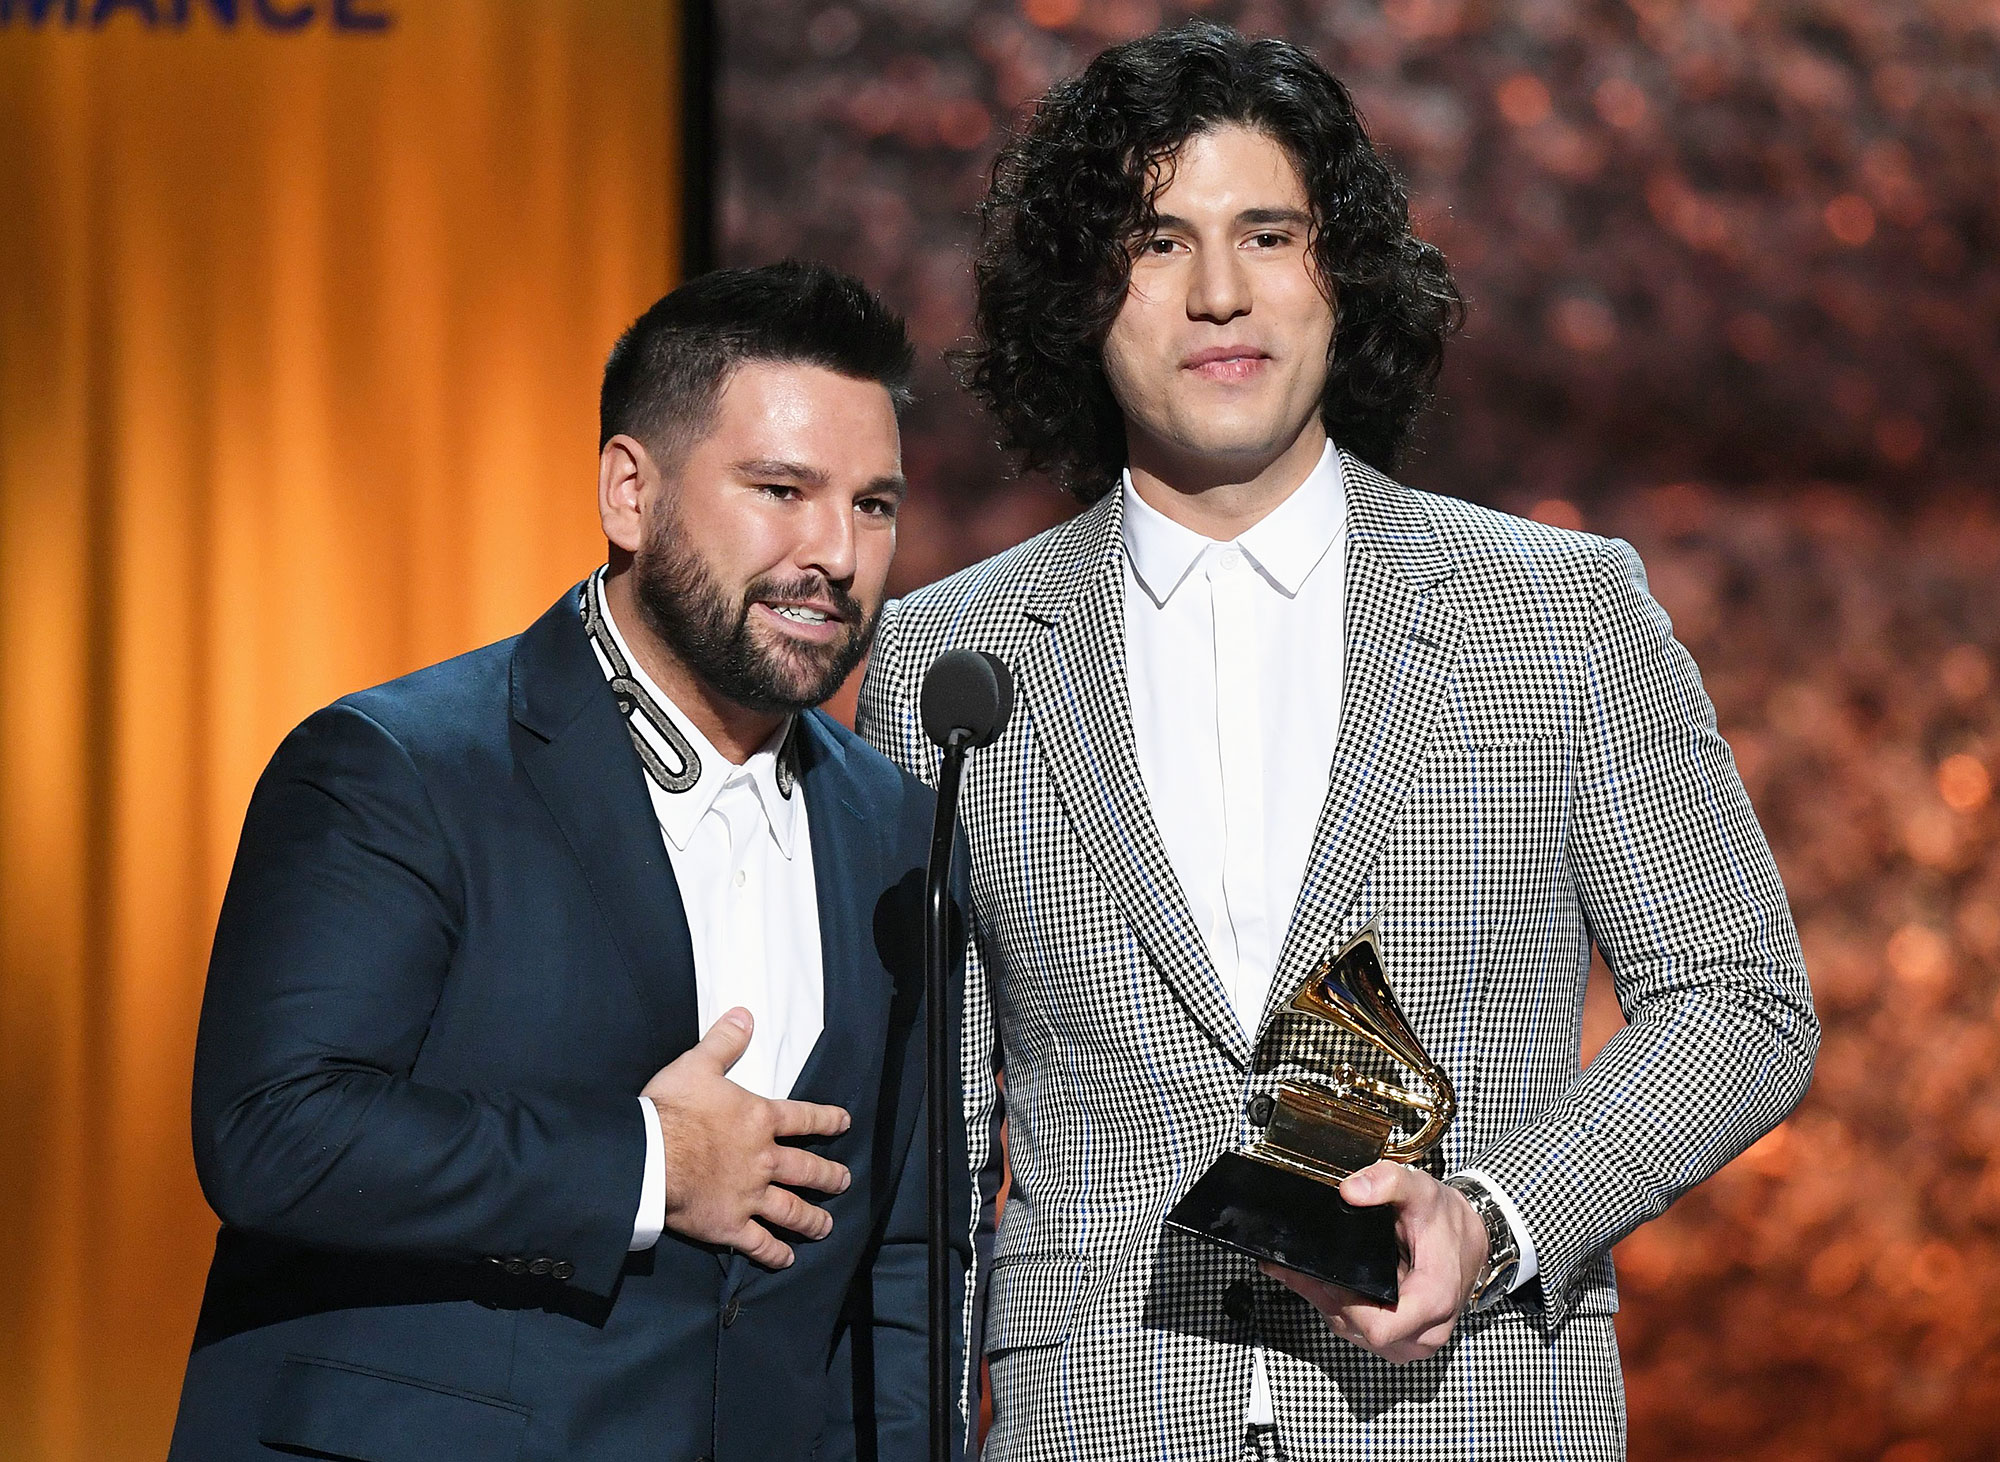 """Dan + Shay Grammys 2019 - """"Shoot Me Straight"""" — Brothers Osborne """"Tequila"""" — Dan + Shay """"When Someone Stops Loving You"""" — Little Big Town """"Dear Hate"""" — Maren Morris featuring Vince Gill """"Meant To Be"""" — Bebe Rexha & Florida Georgia Line"""